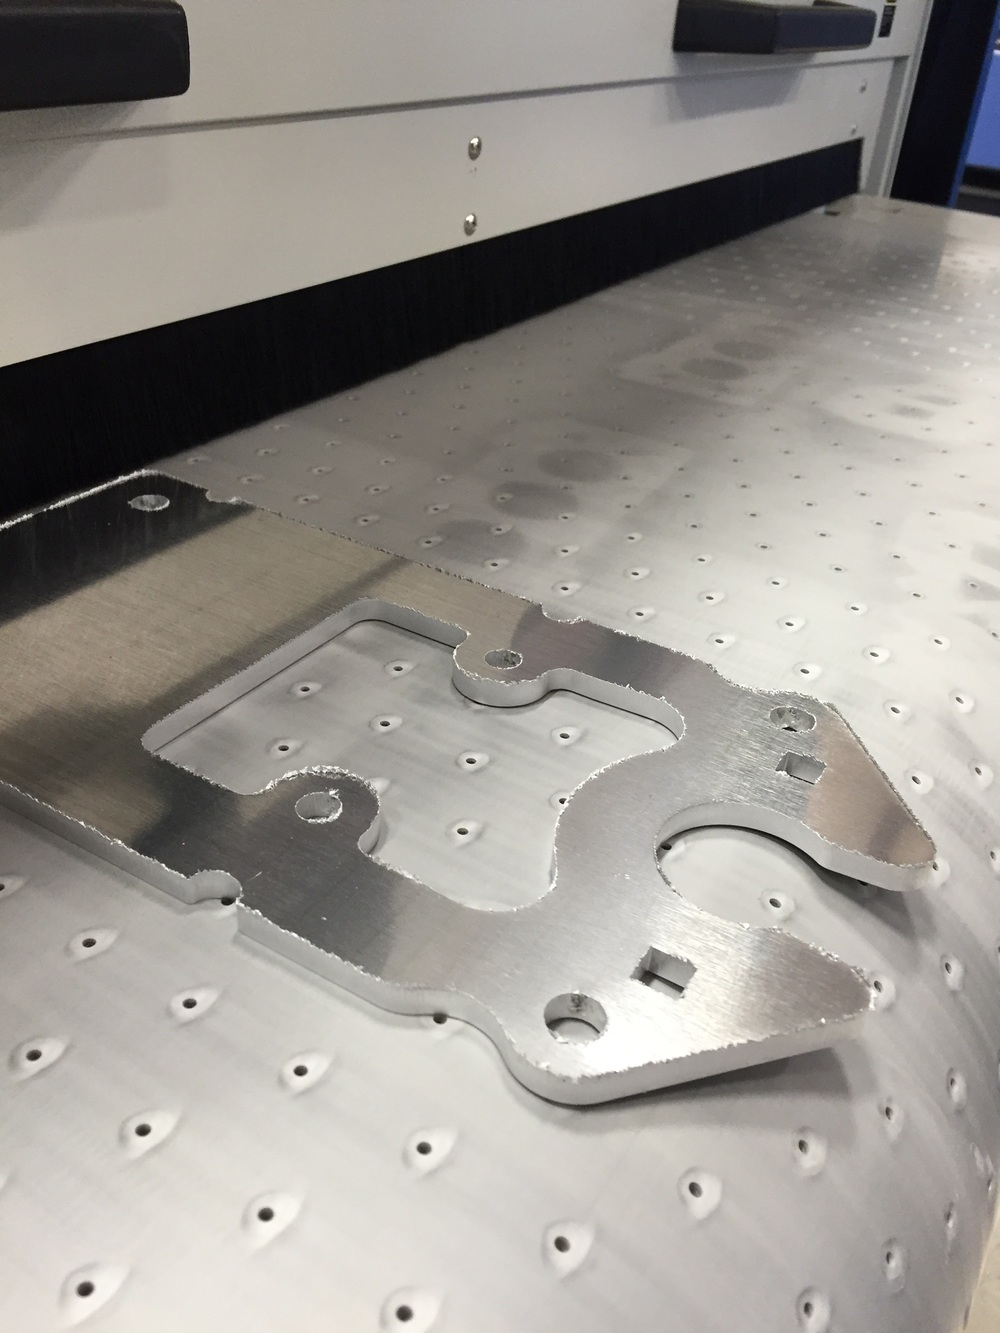 Here is an aluminum laser cut part about to be fed into the machine.  Laser cutting aluminum usually leaves a burr all of the way around the cut edges.  A part such as this could take someone approximately 2 minutes to debur properly. The small holes you see in the conveyor are actually vacuum ports which help to hold the part in place while the brushes do their work.